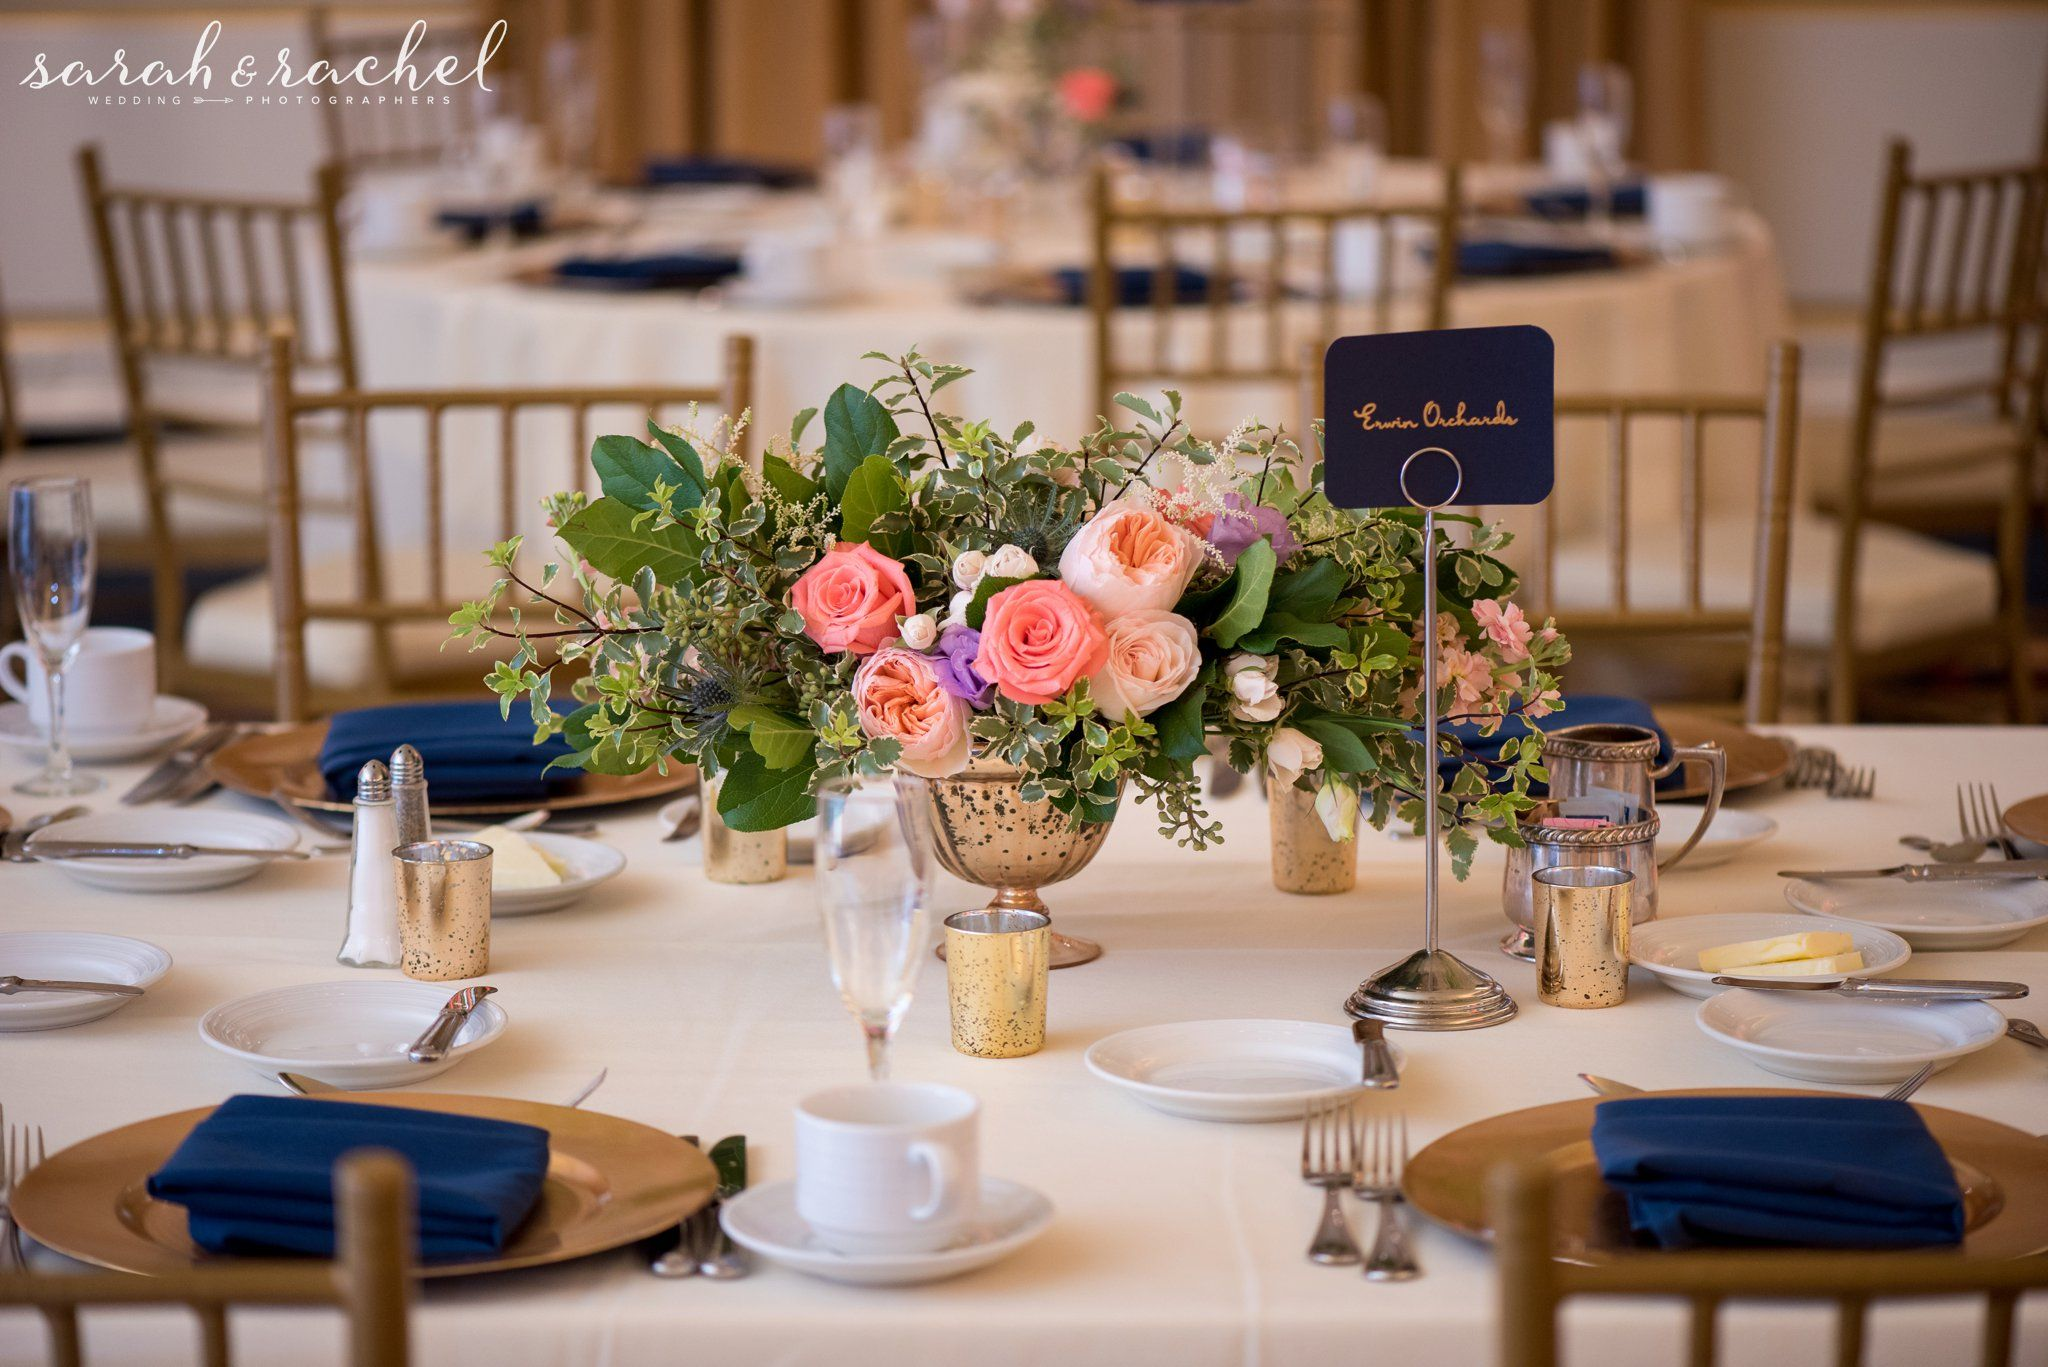 Tammy And Patrick Hold An Elegant Wedding At The Dearborn Inn Just Outside Detroit Mi Be Sure To Check Out Her Amazing Reception Details